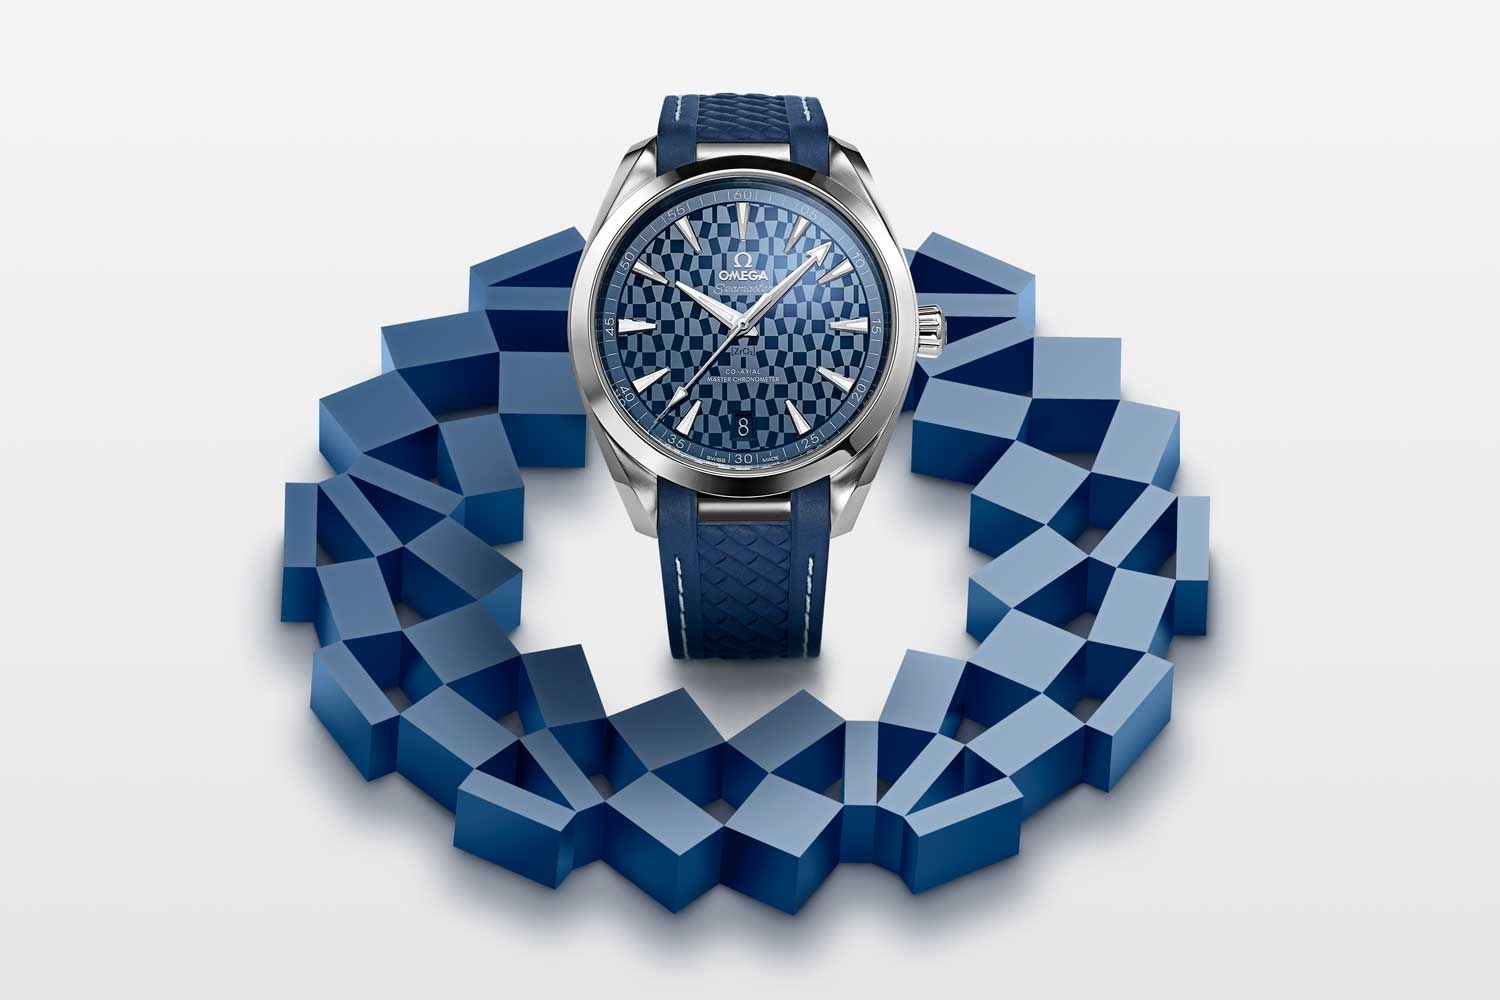 """The Seamaster Aqua Terra """"Tokyo 2020"""" has a polished blue ceramic dial distinguished by a laser-engraved Tokyo 2020 pattern"""